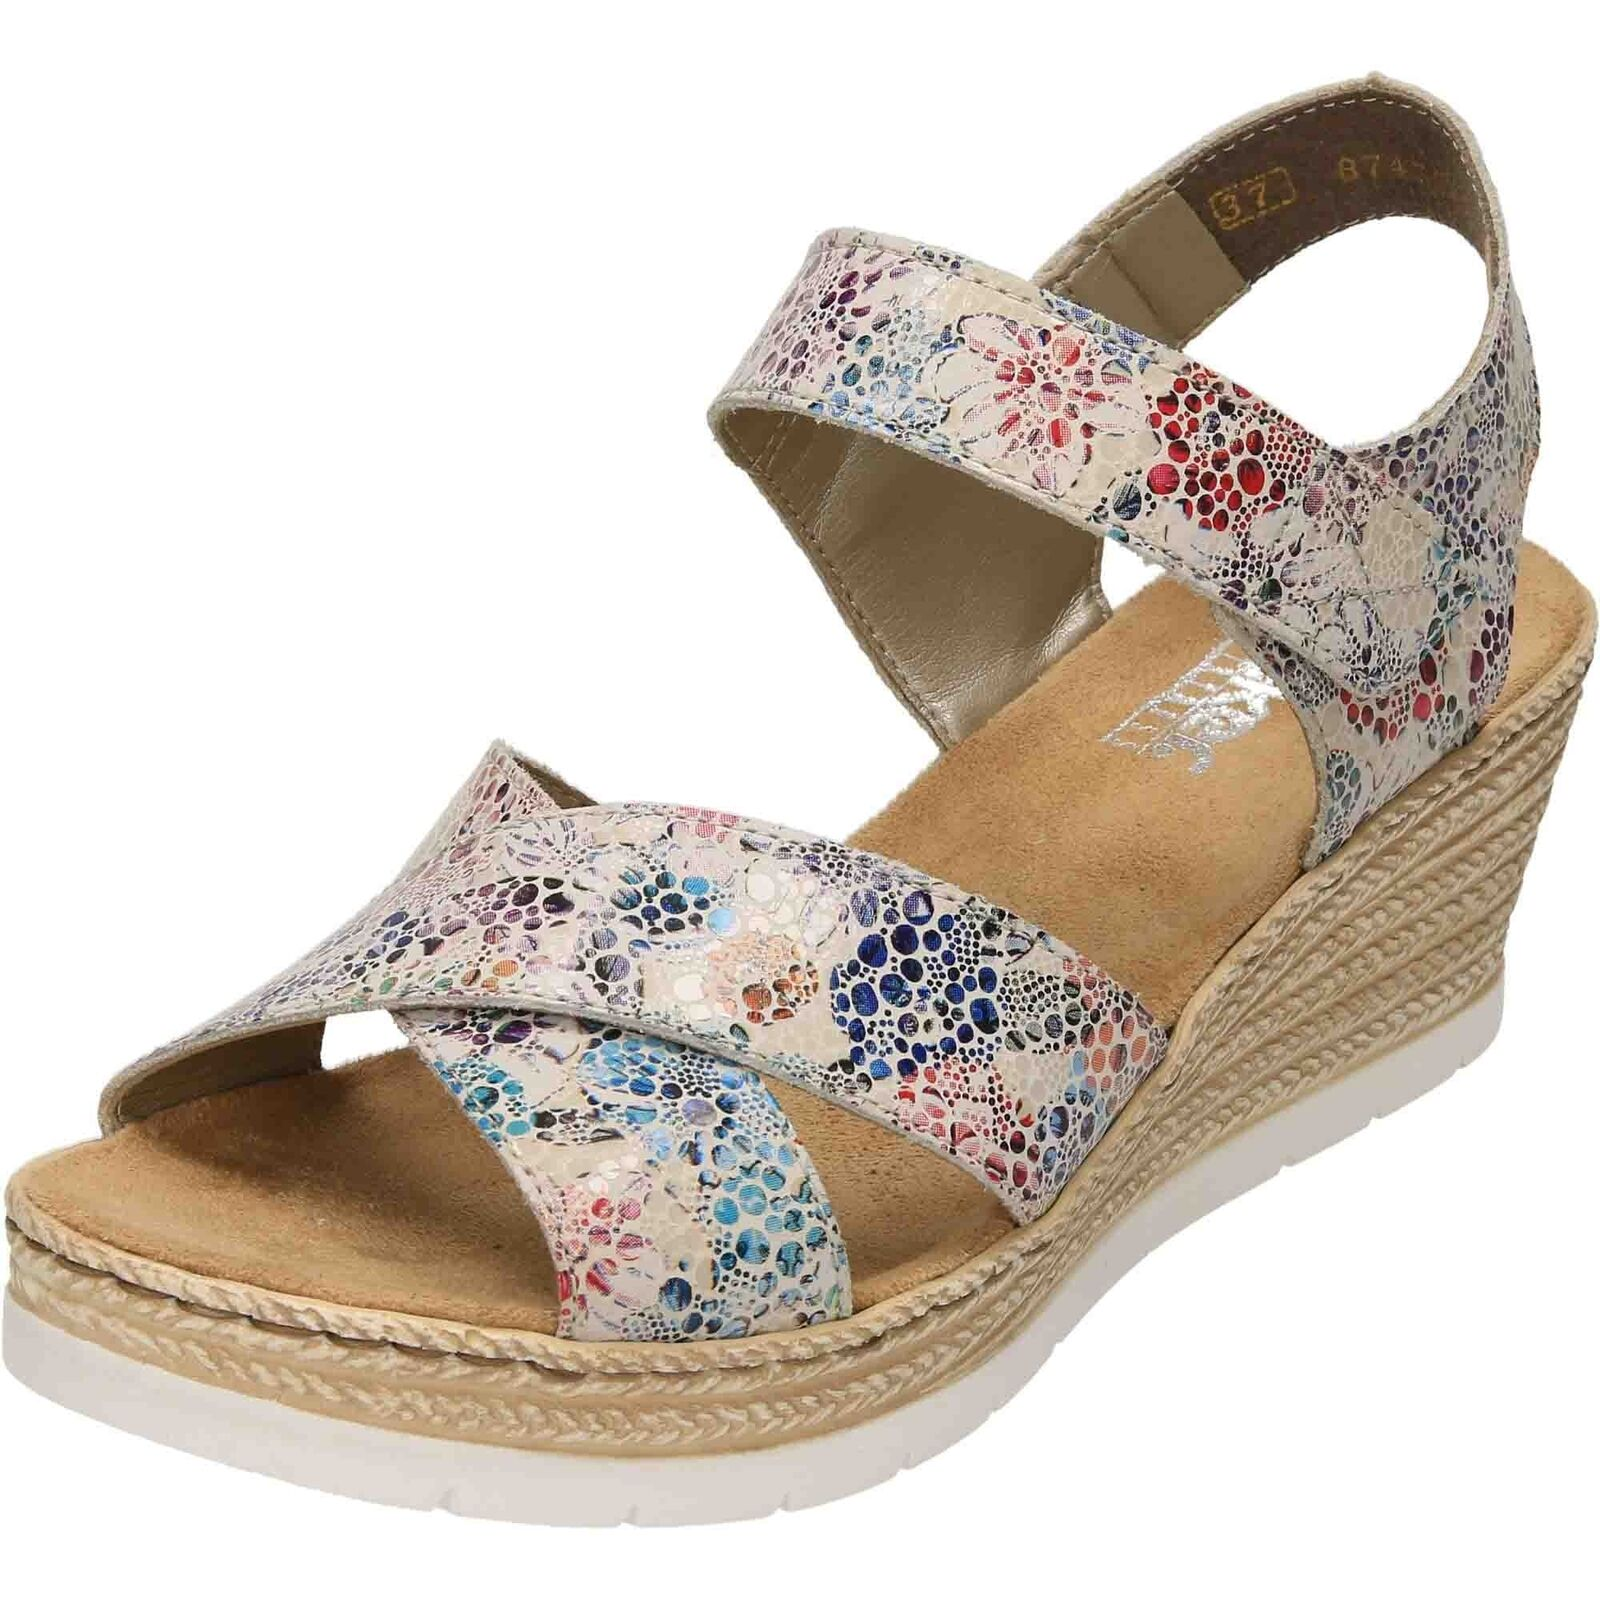 Rieker Wedge Heel Platform Leather Sandals 61943-90 Open Toe Slingback